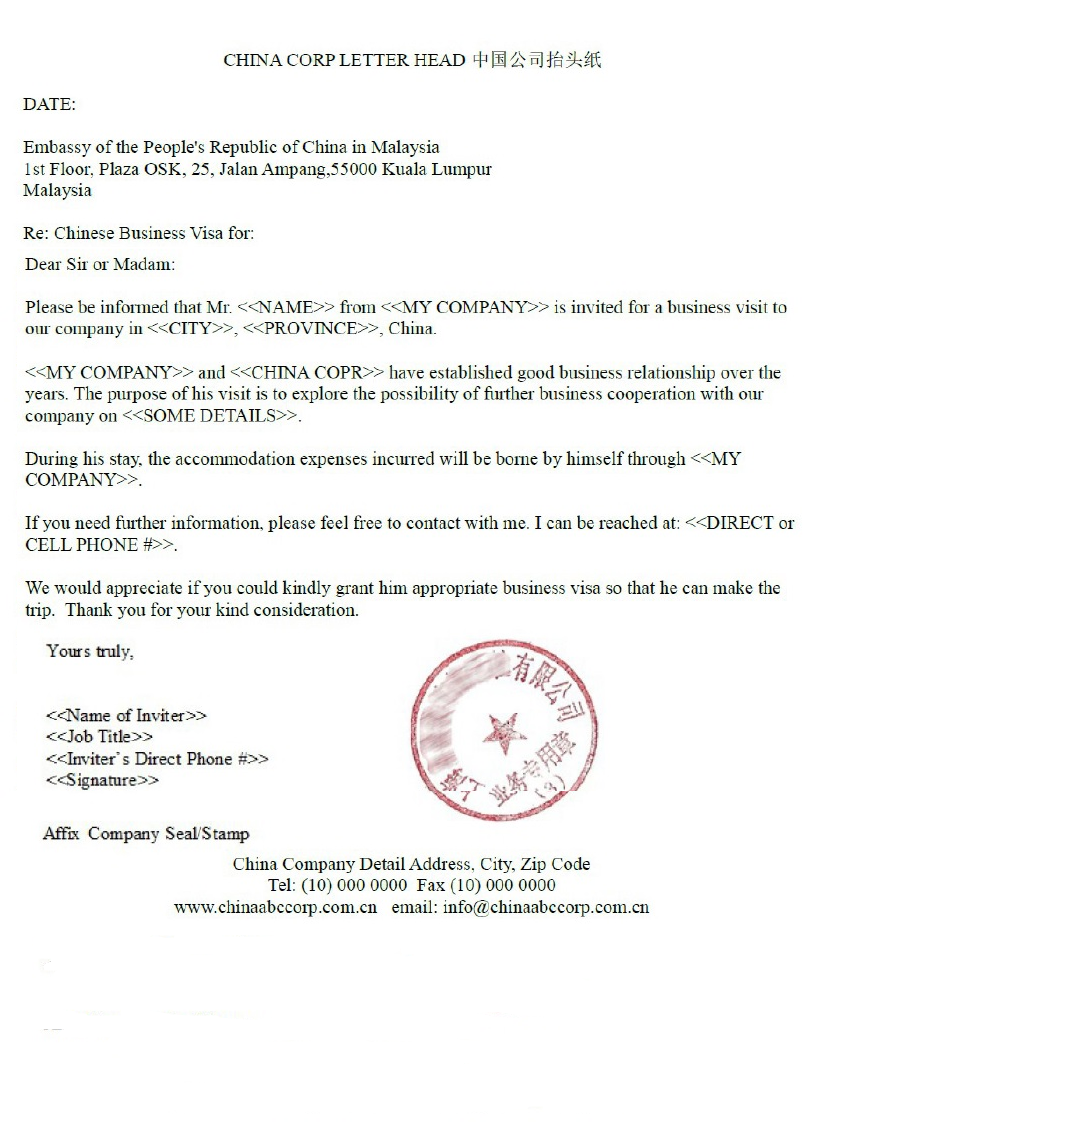 Sample invitation letter for business visa tripvisa click here to download stopboris